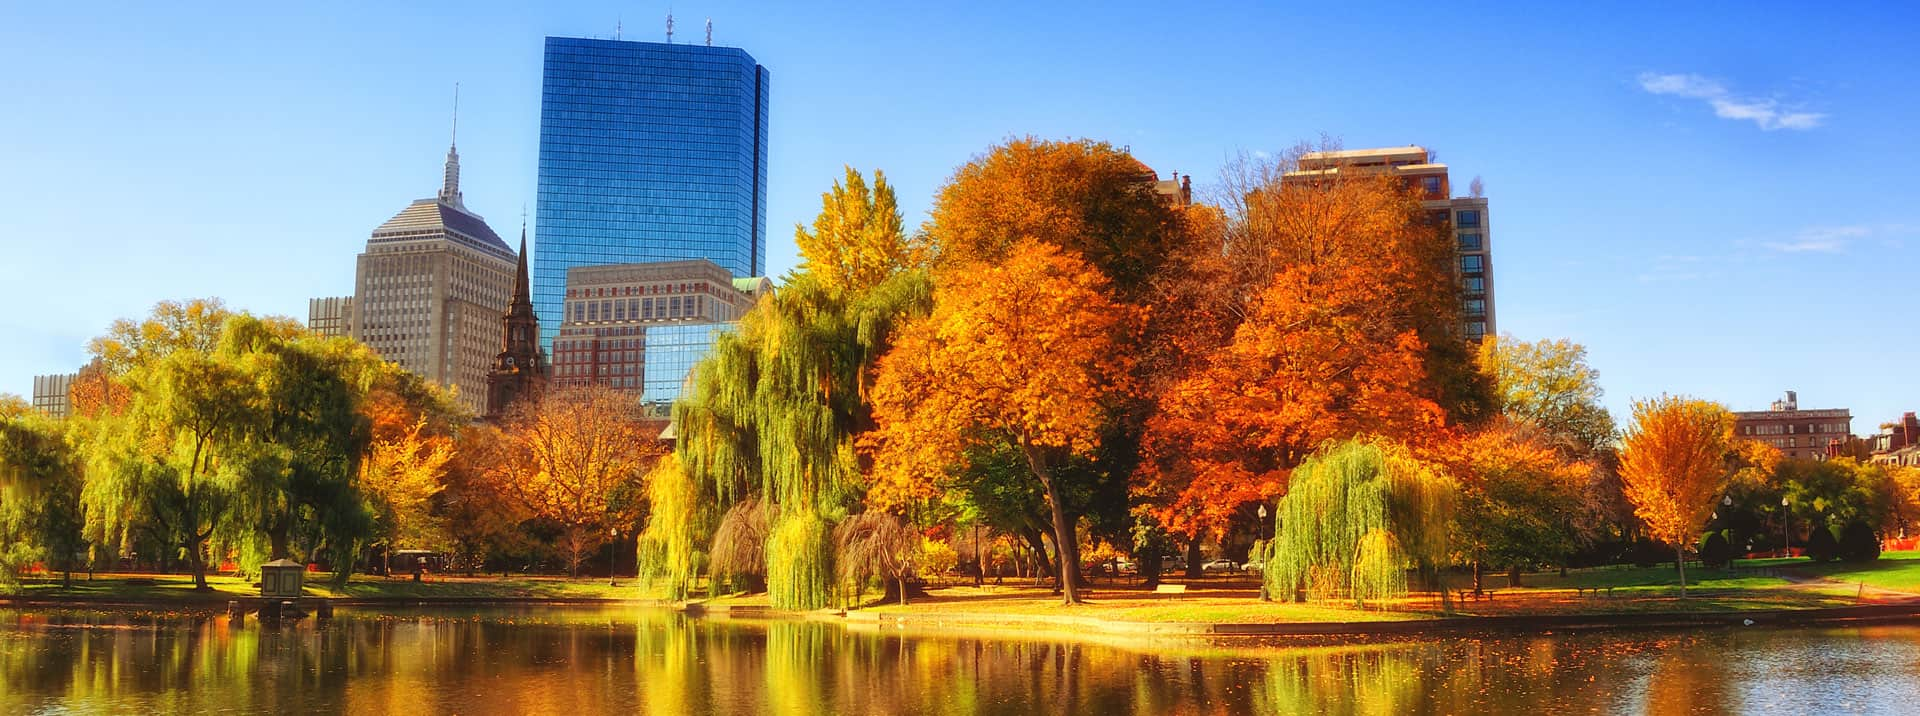 Featured-Image_Boston_1920x716